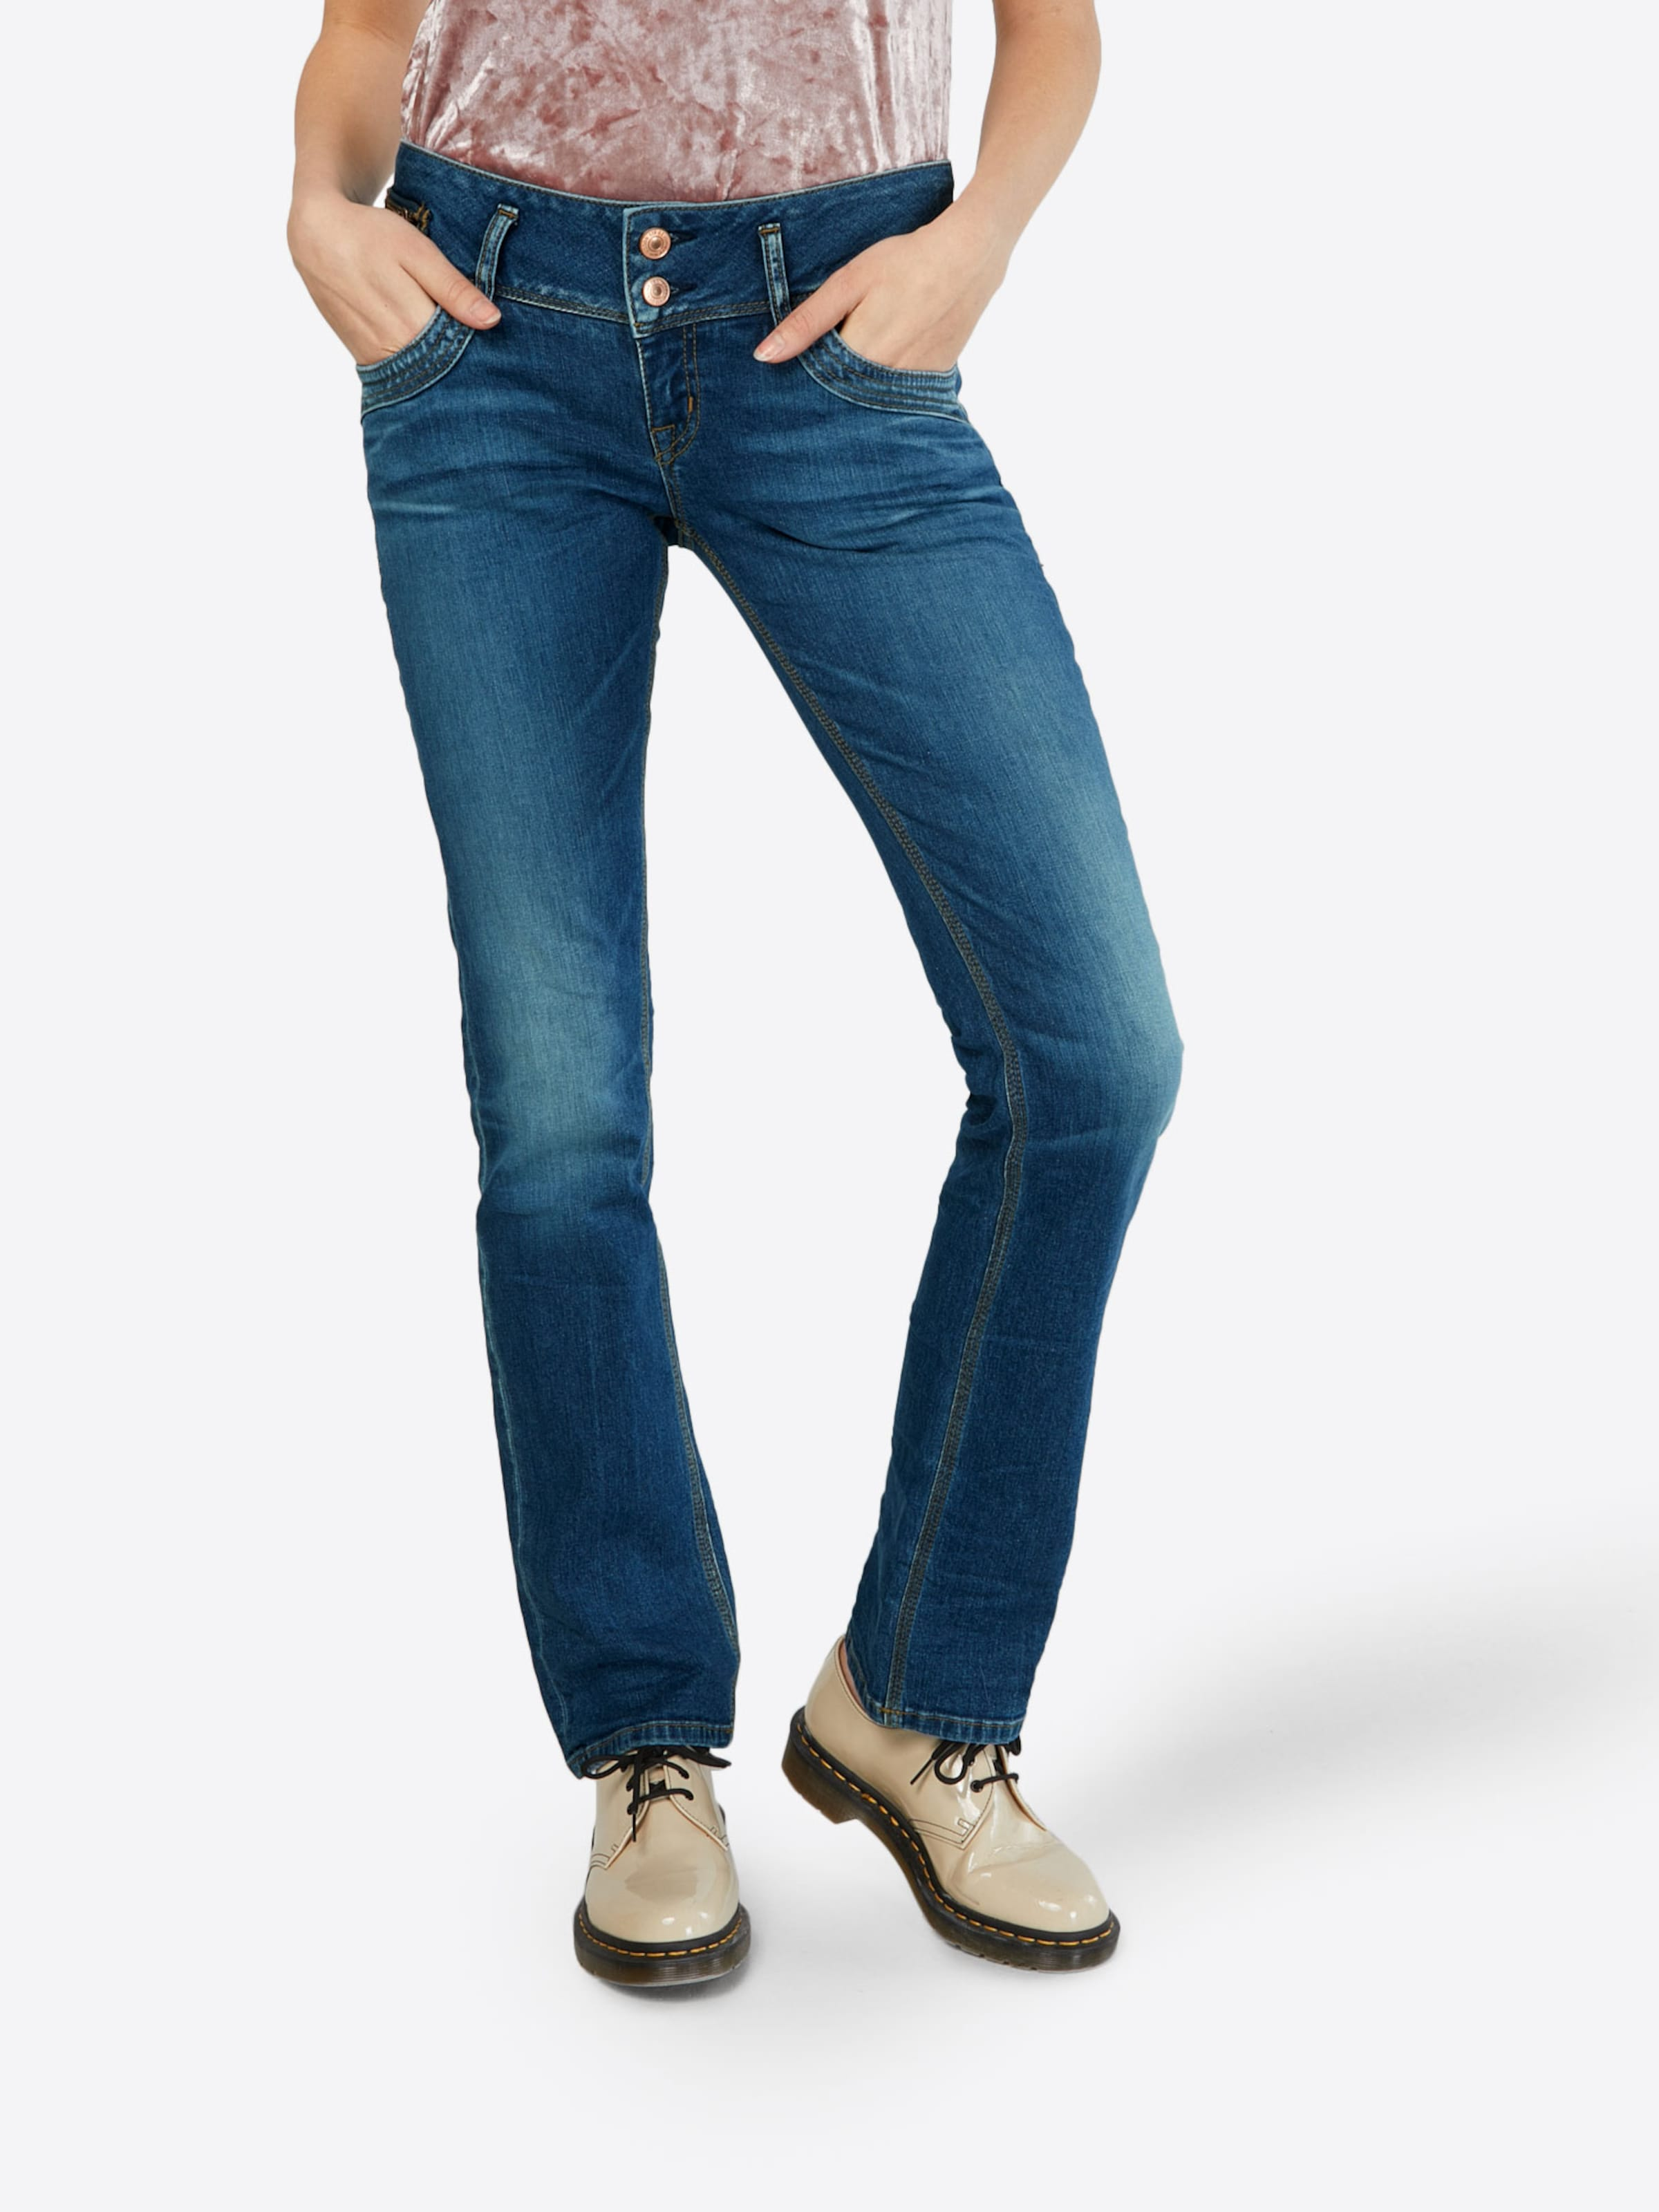 In Blue Jeans 'jonquil' Denim Ltb 35R4jqAL